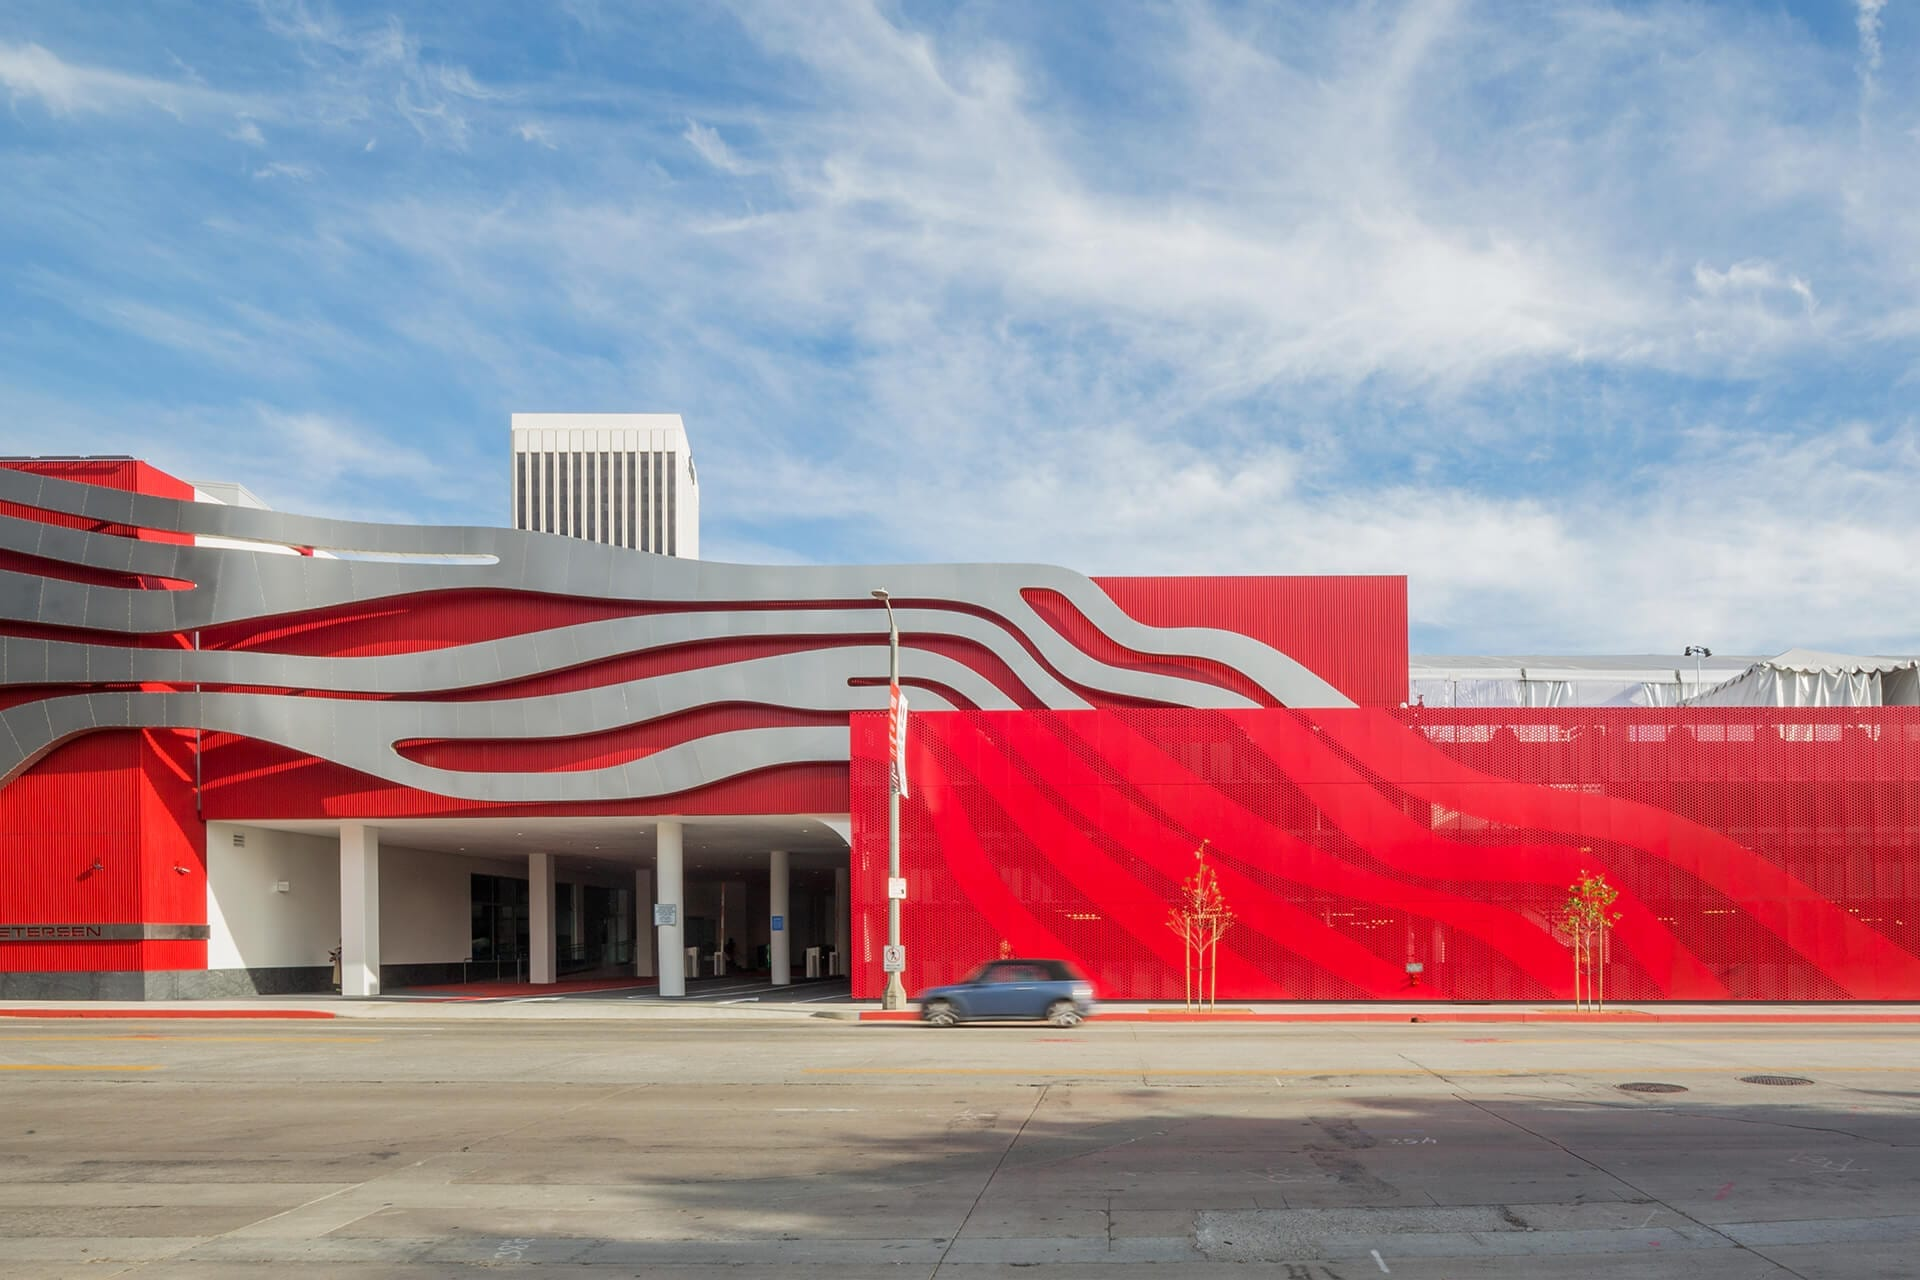 Perforated metal screenwall by Zahner continues the Petersen Automotive Museum's sculptural motif.